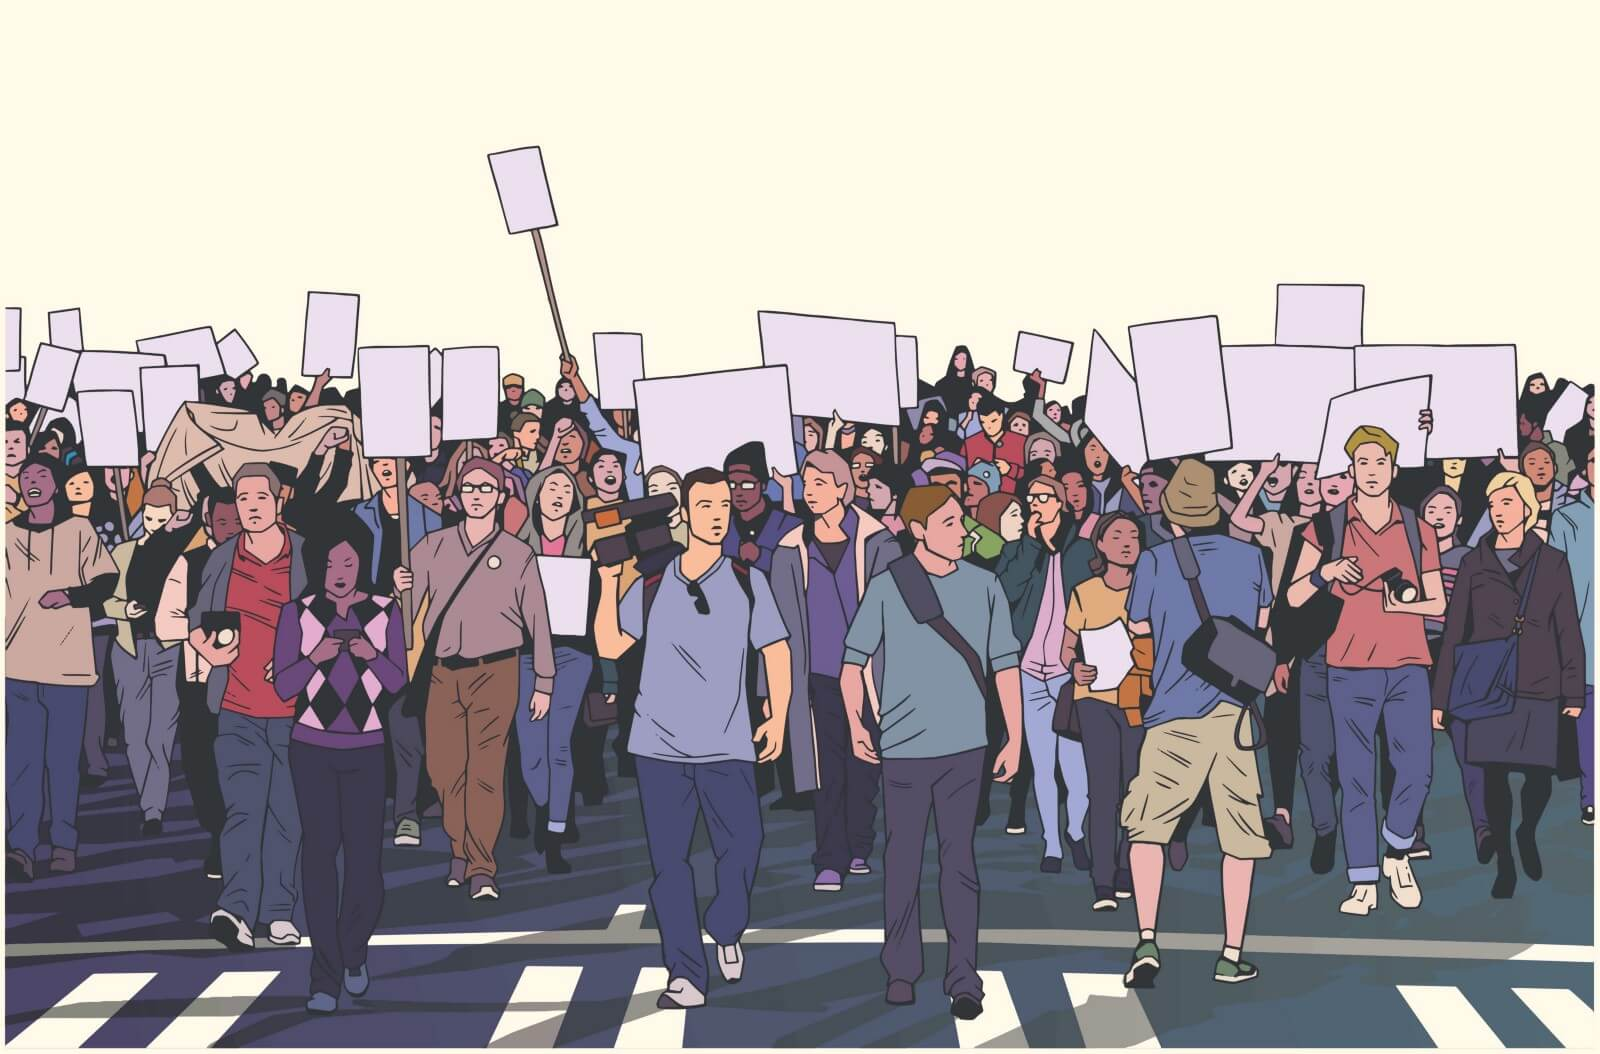 Cartoon rendition of dozens of various people of different genders, ethnicities, and ages protesting in the street